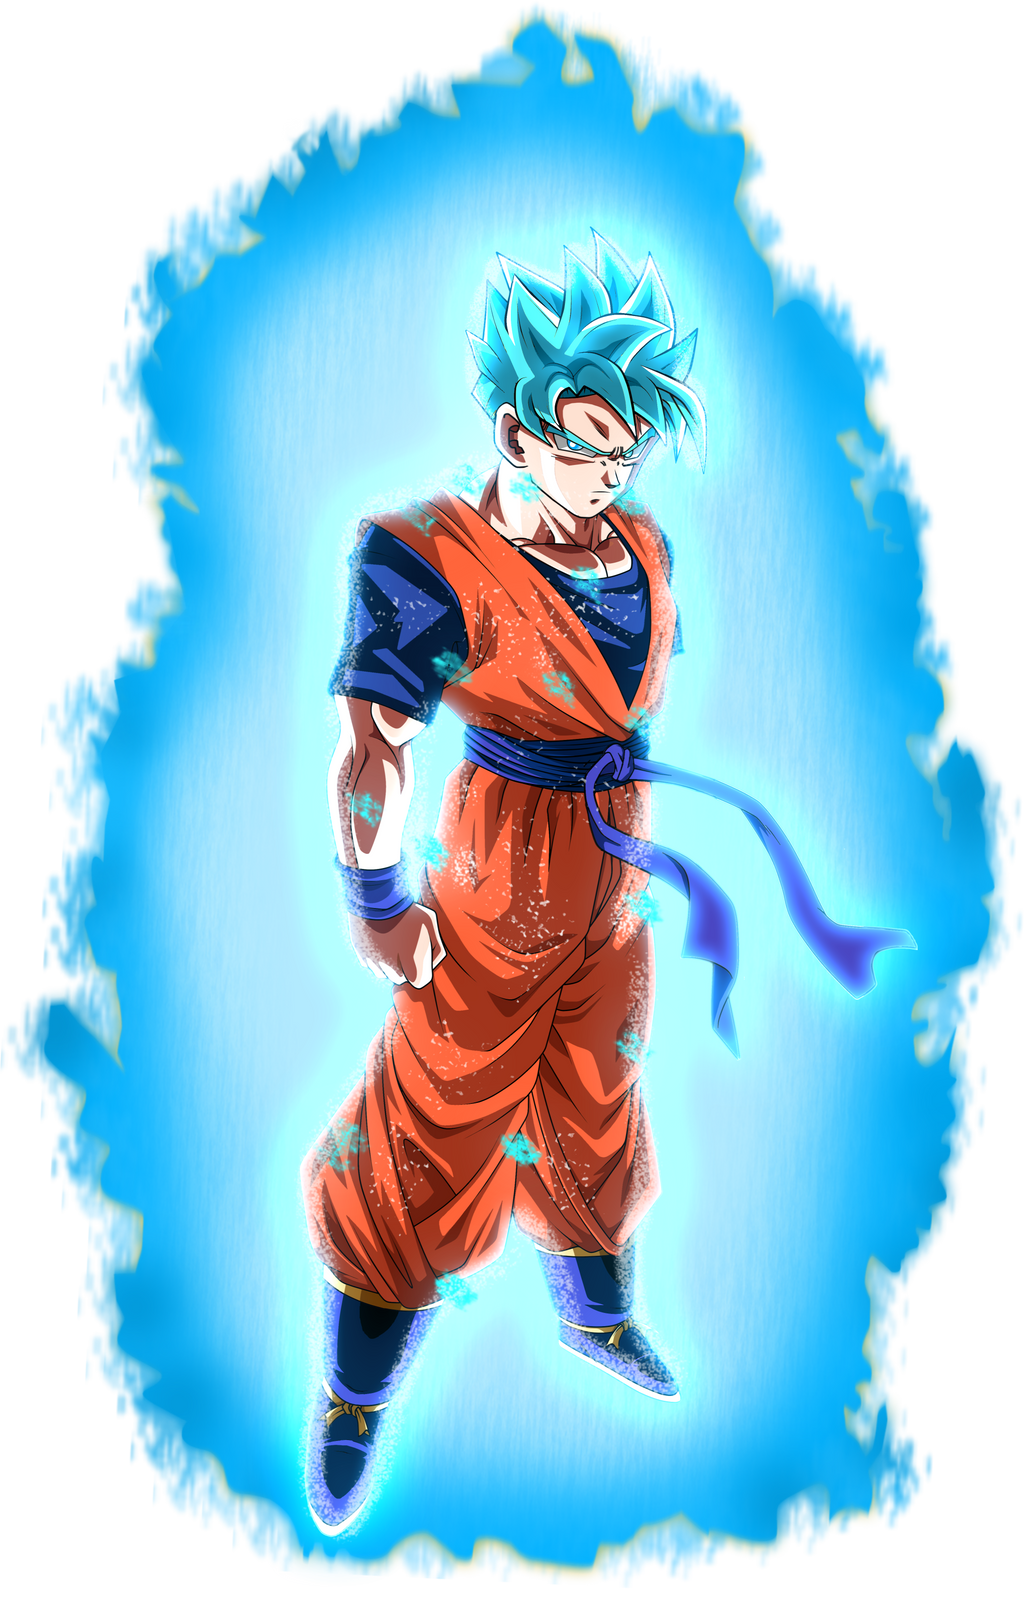 Son gohan super saiyan blue aura by brusselthesaiyan on - Son gohan super saiyan 4 ...